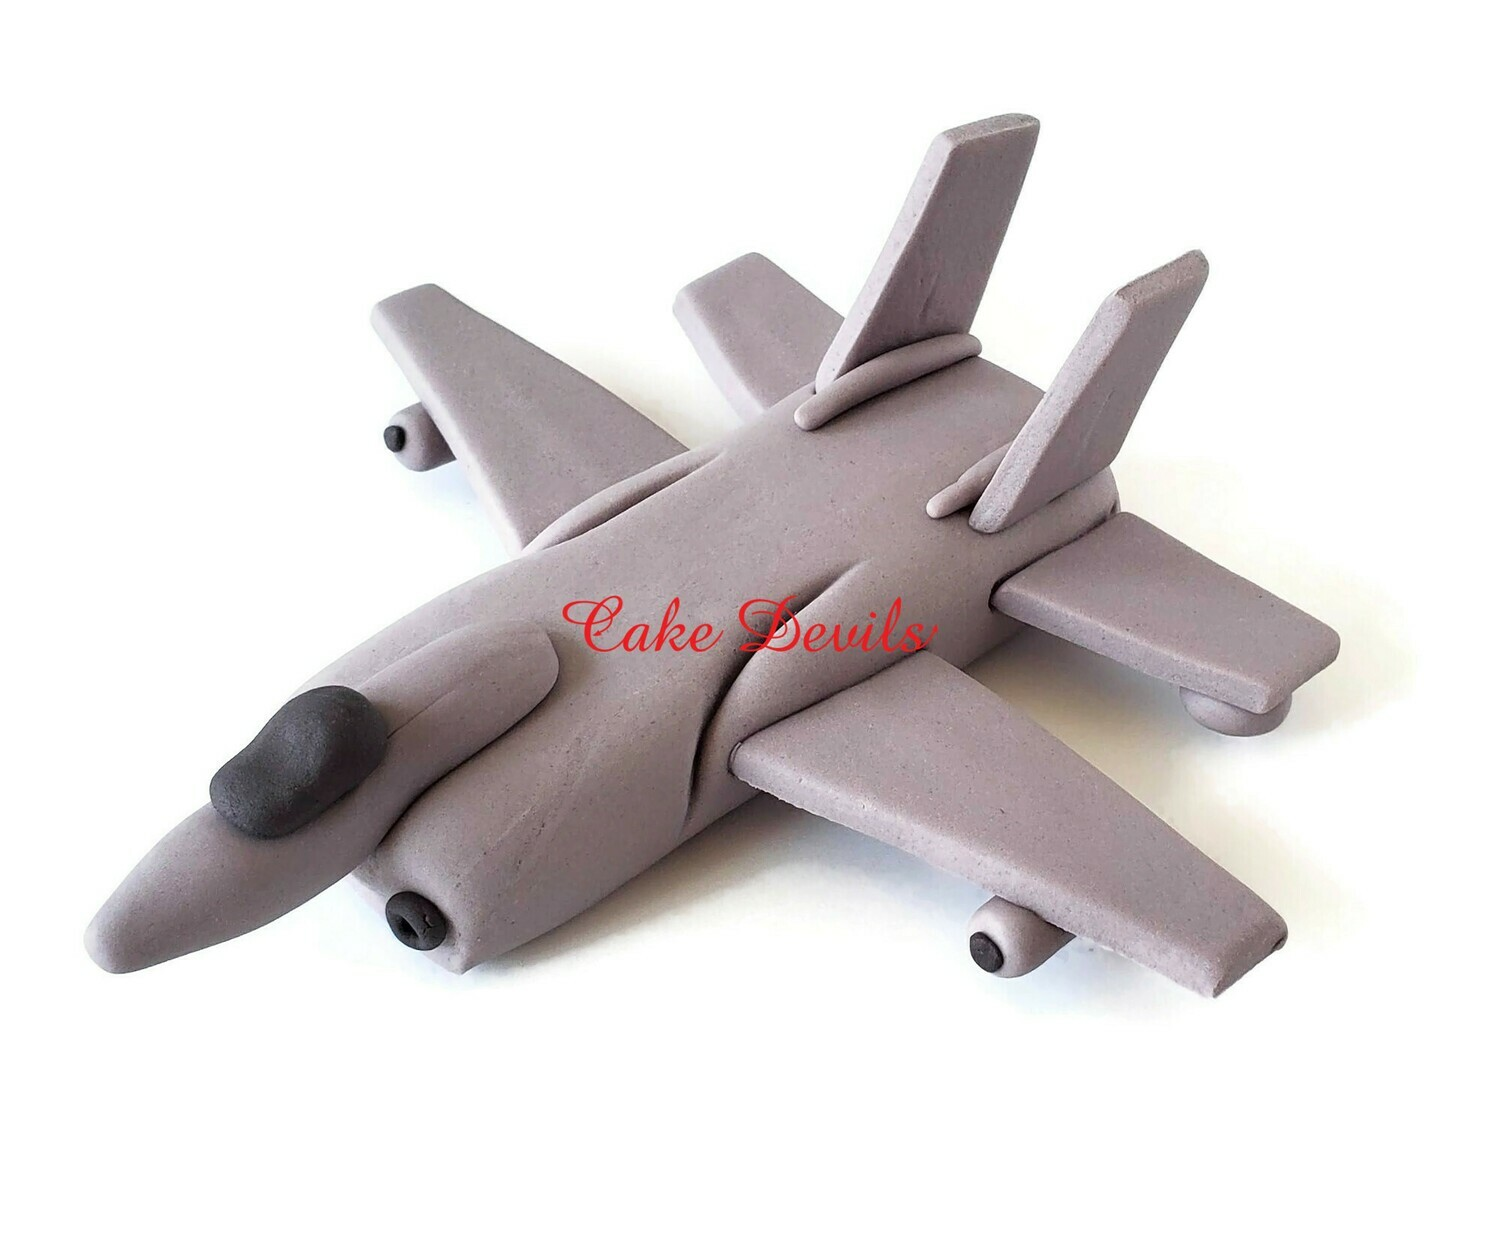 Fondant Fighter Jet Aircraft Cake Topper, perfect Plane for a Military retirement or birthday